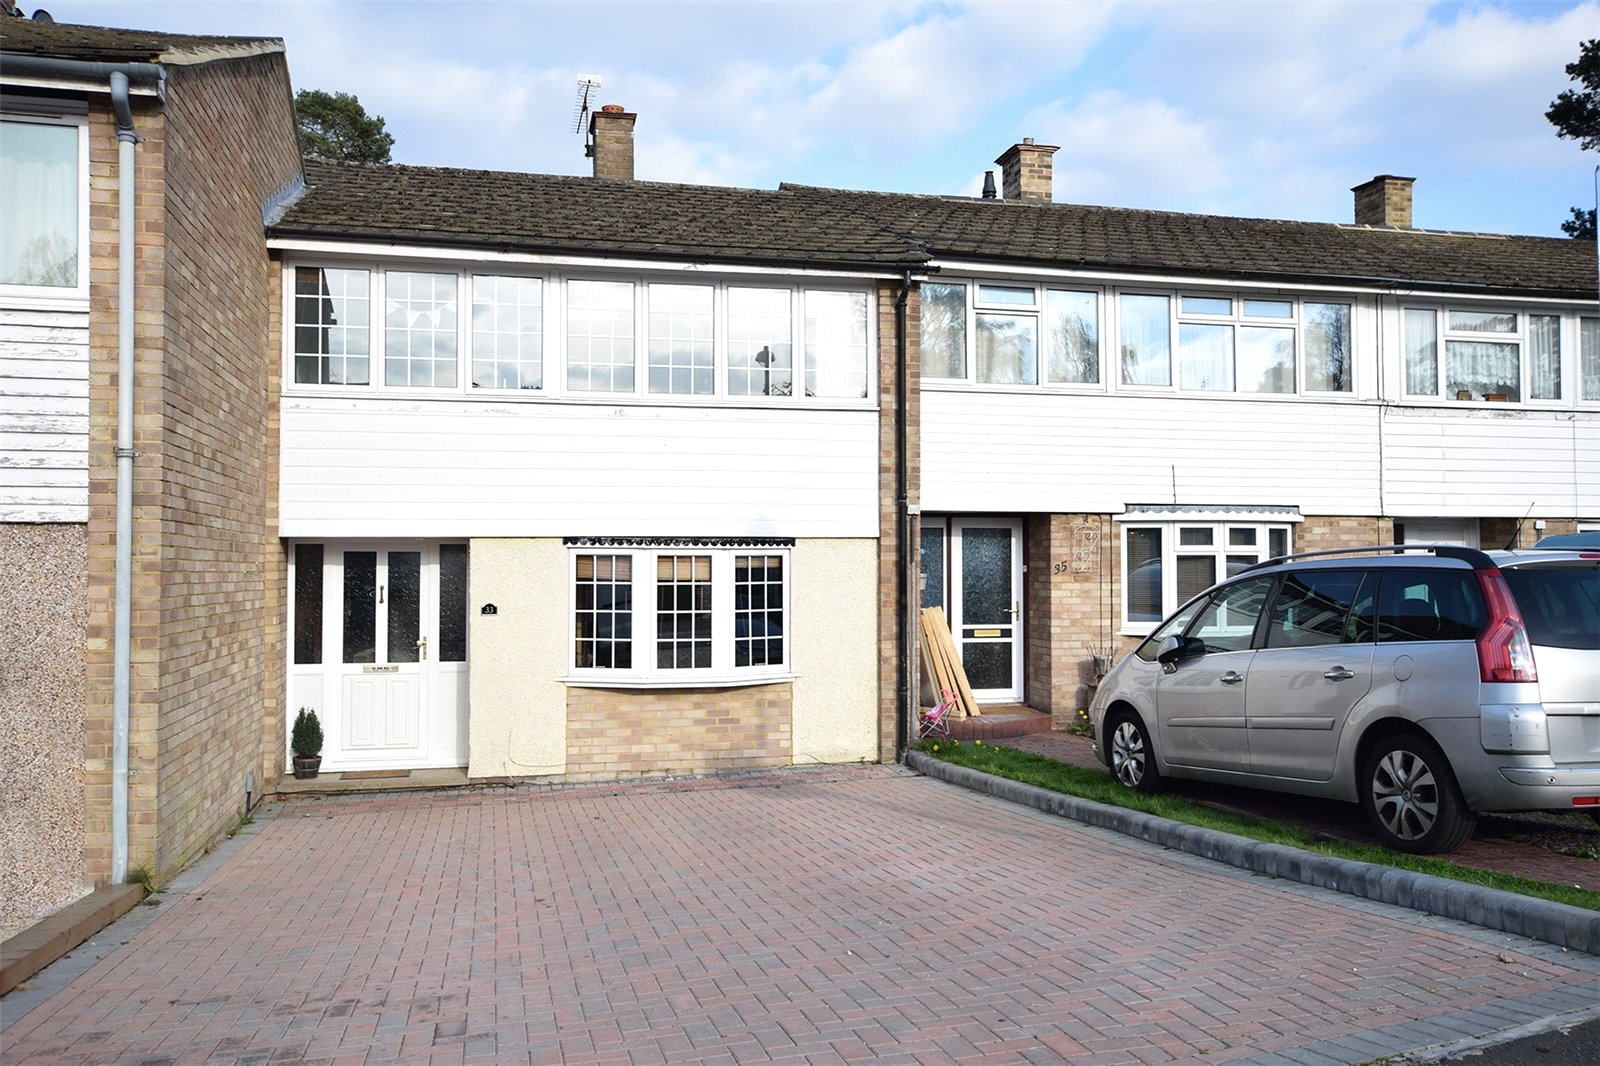 3 Bedrooms Terraced House for sale in Uffington Drive, Bracknell, Berkshire, RG12